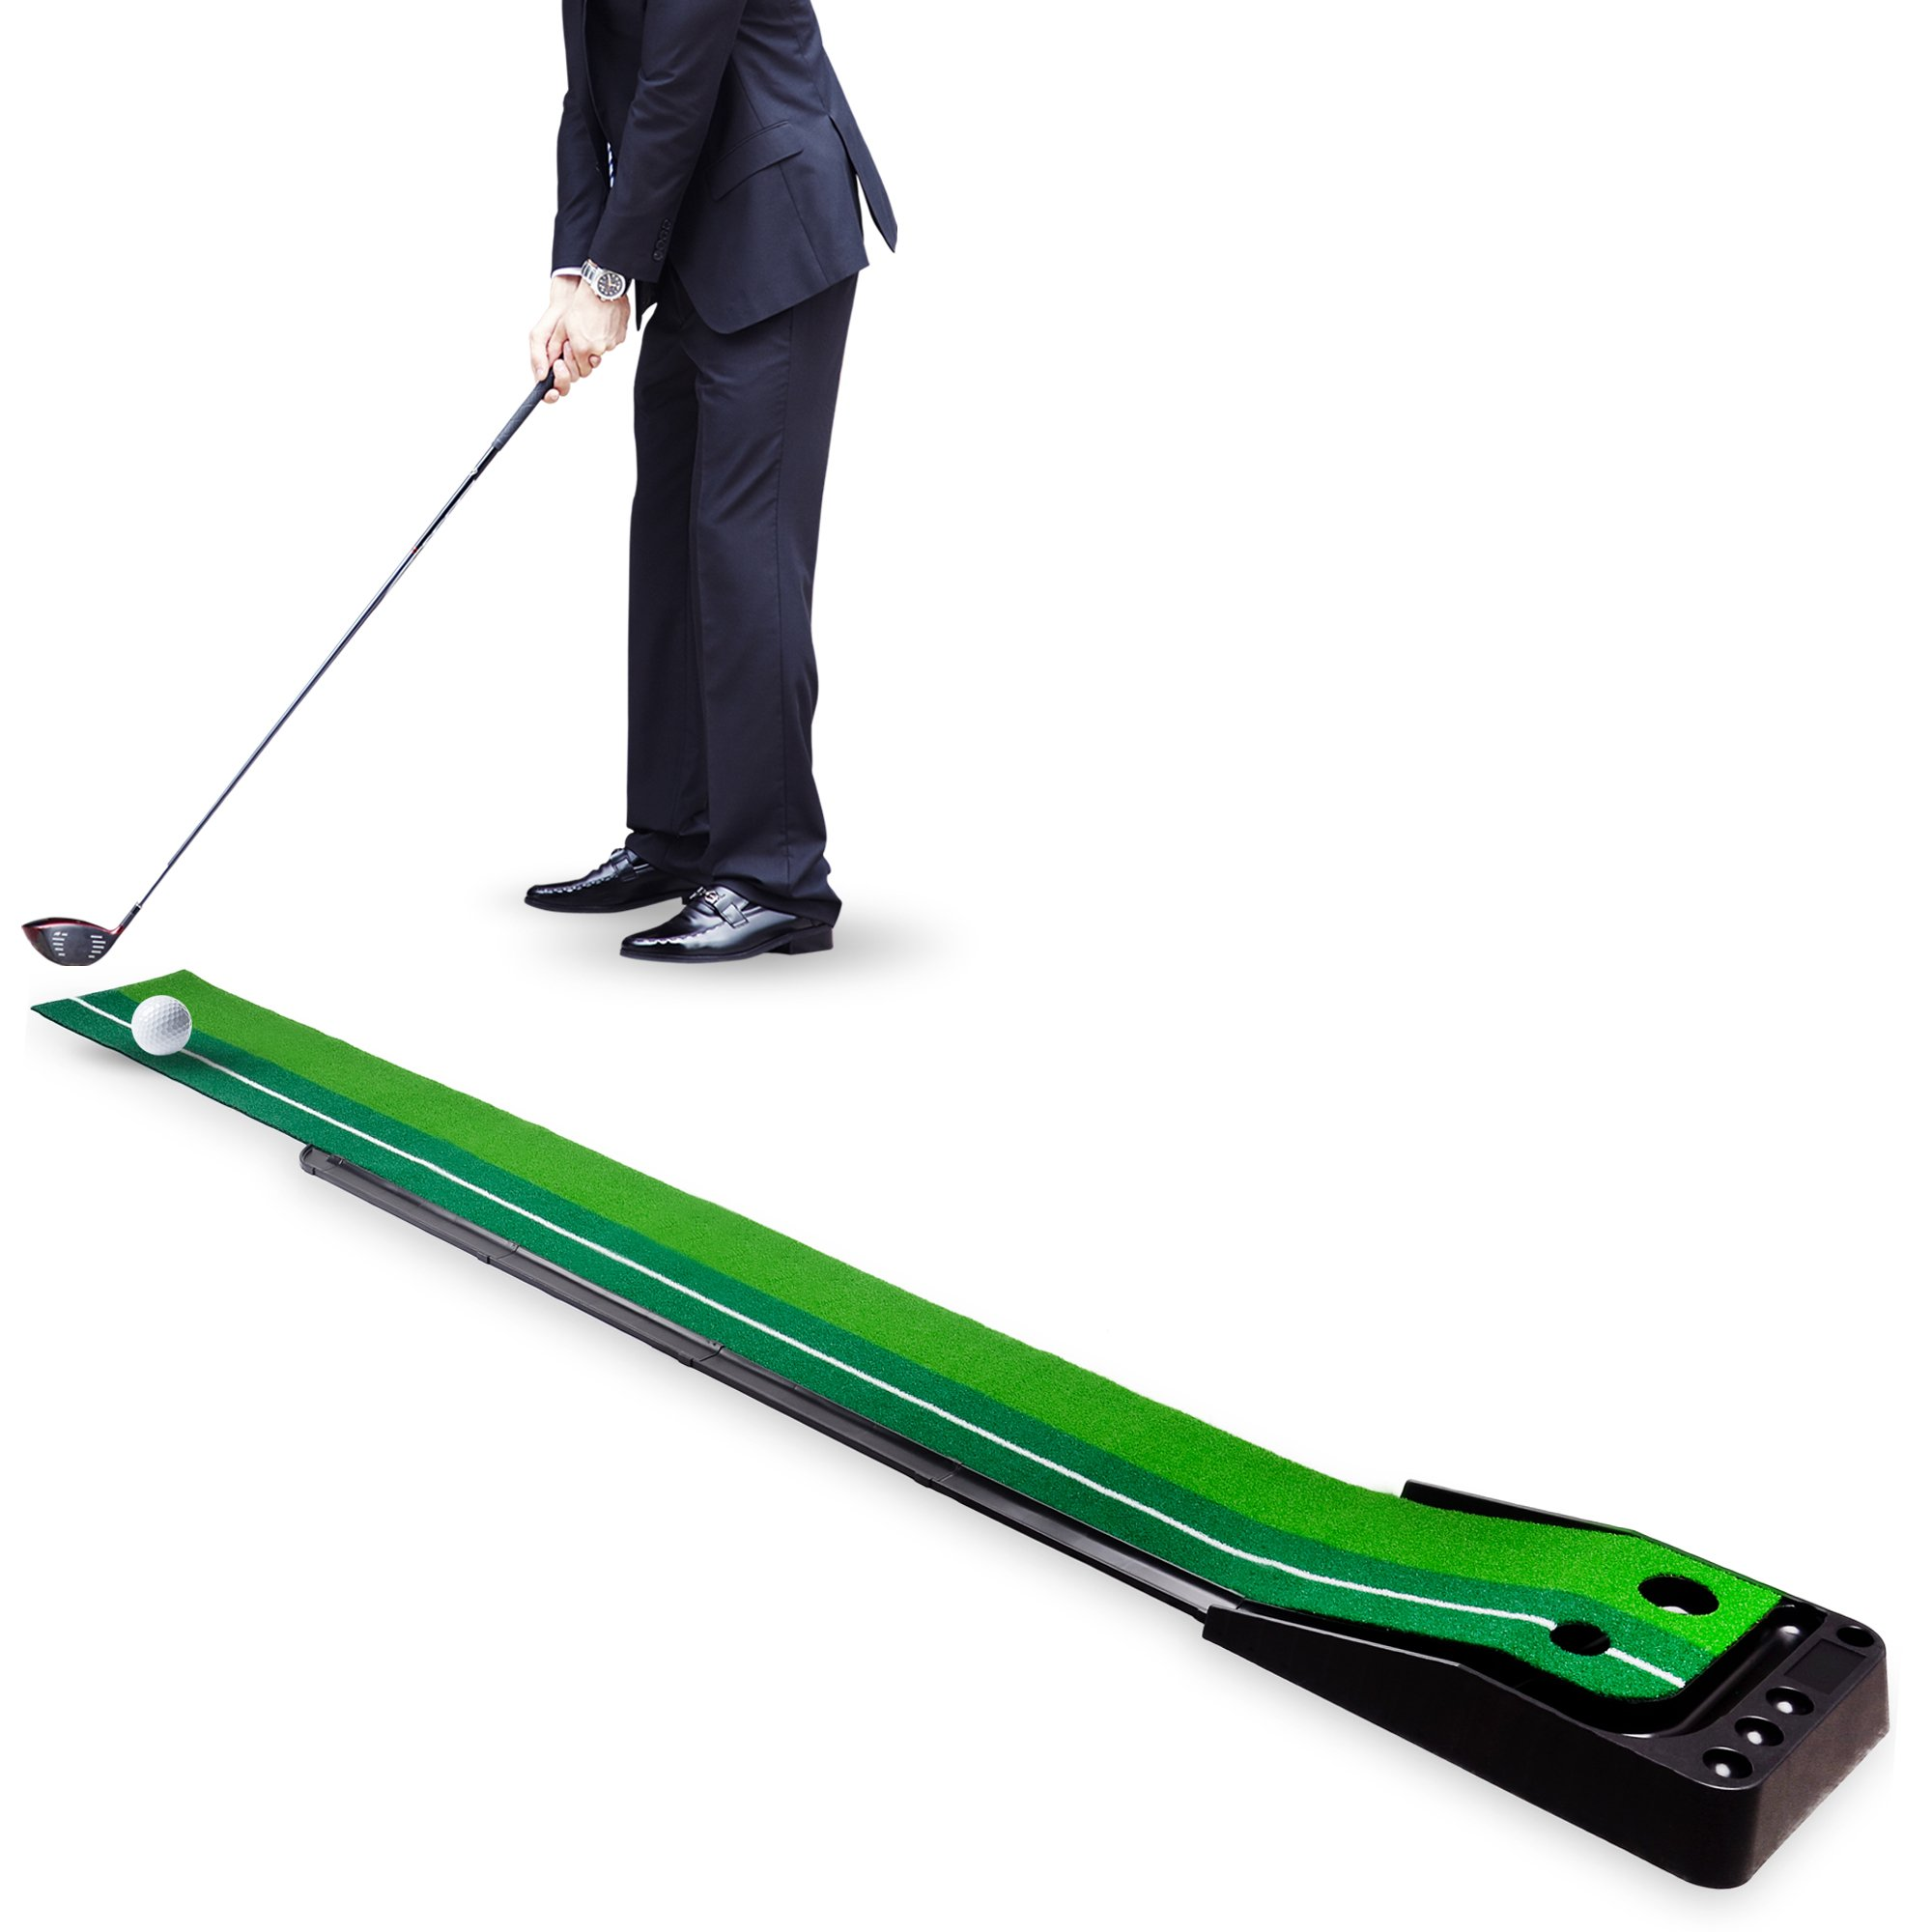 H&B Luxuries Indoor Golf Putting Mat 2 Holes Ball Auto Return, 9.84 Feet Long GPE01 by H&B Luxuries